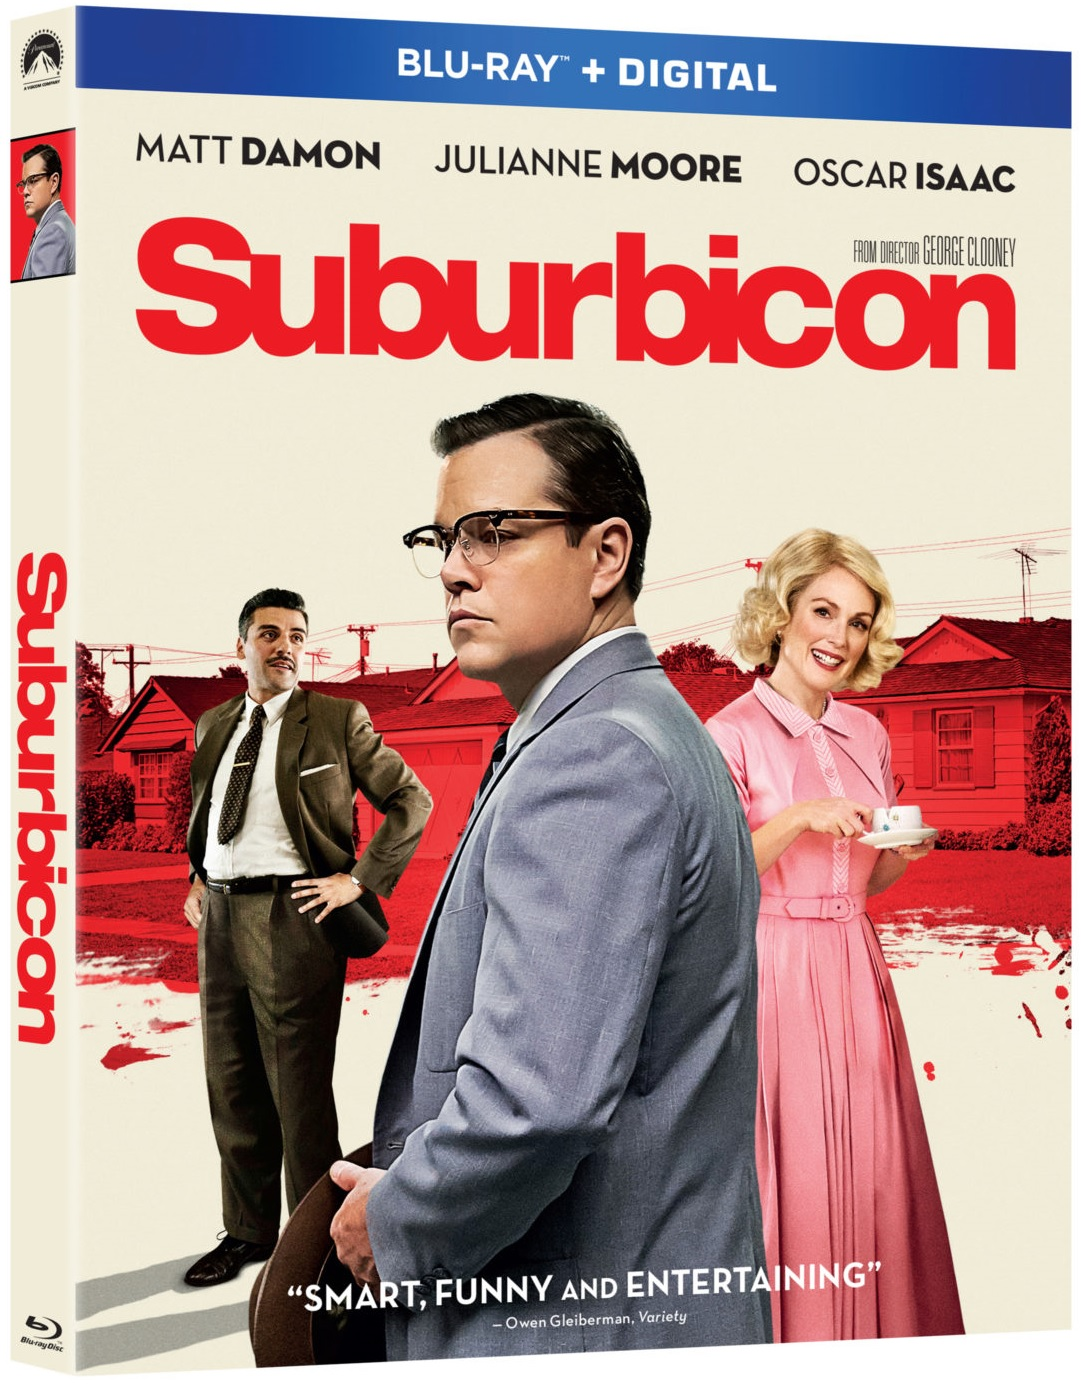 SUBURBICON Blu-ray